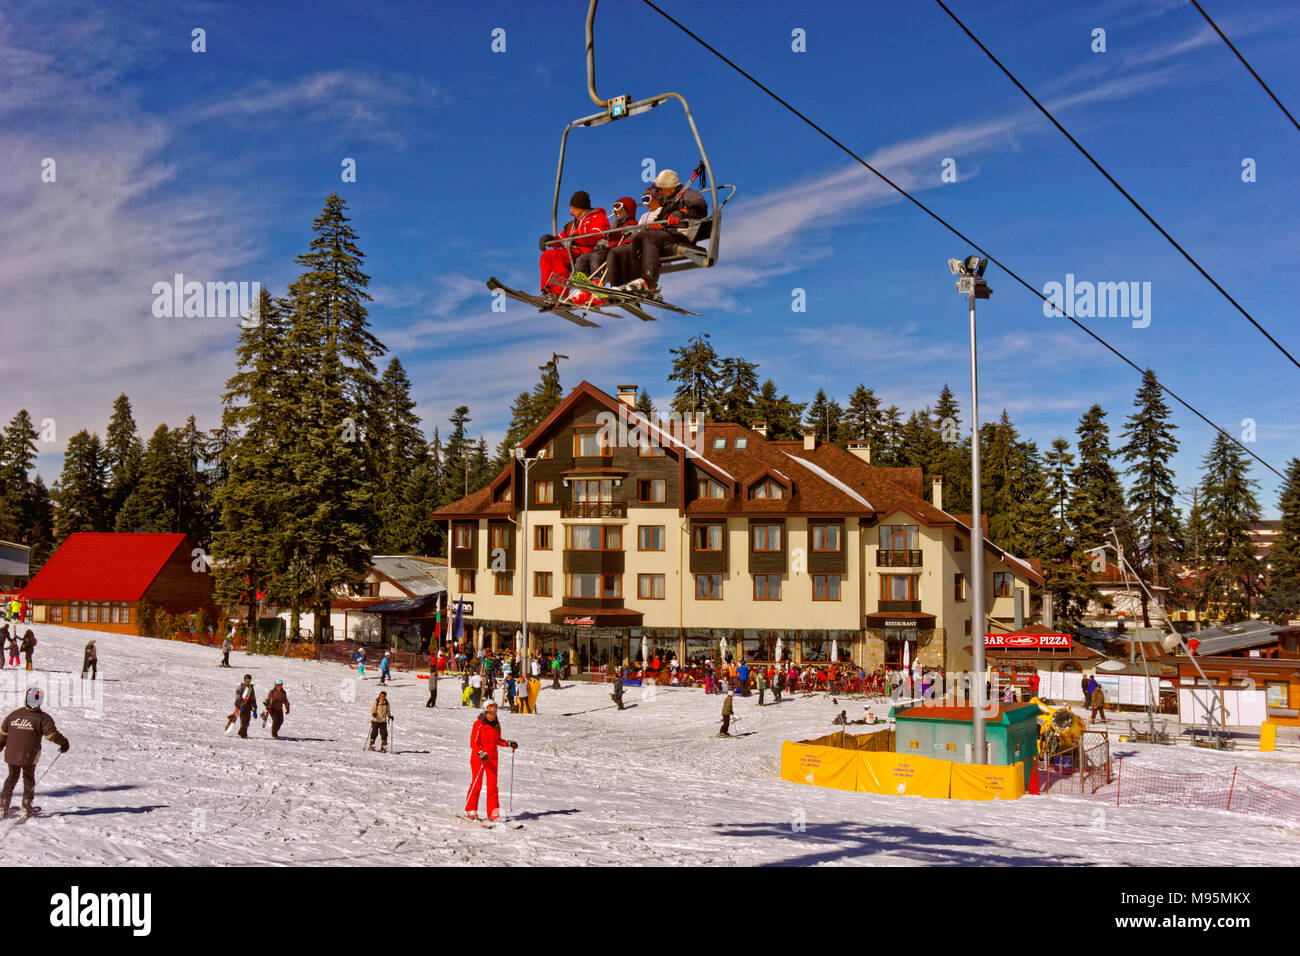 Hotel Ice Angels and Martinovi Baraki chairlift at Borovets Ski resort, Targovishte, Bulgaria. - Stock Image